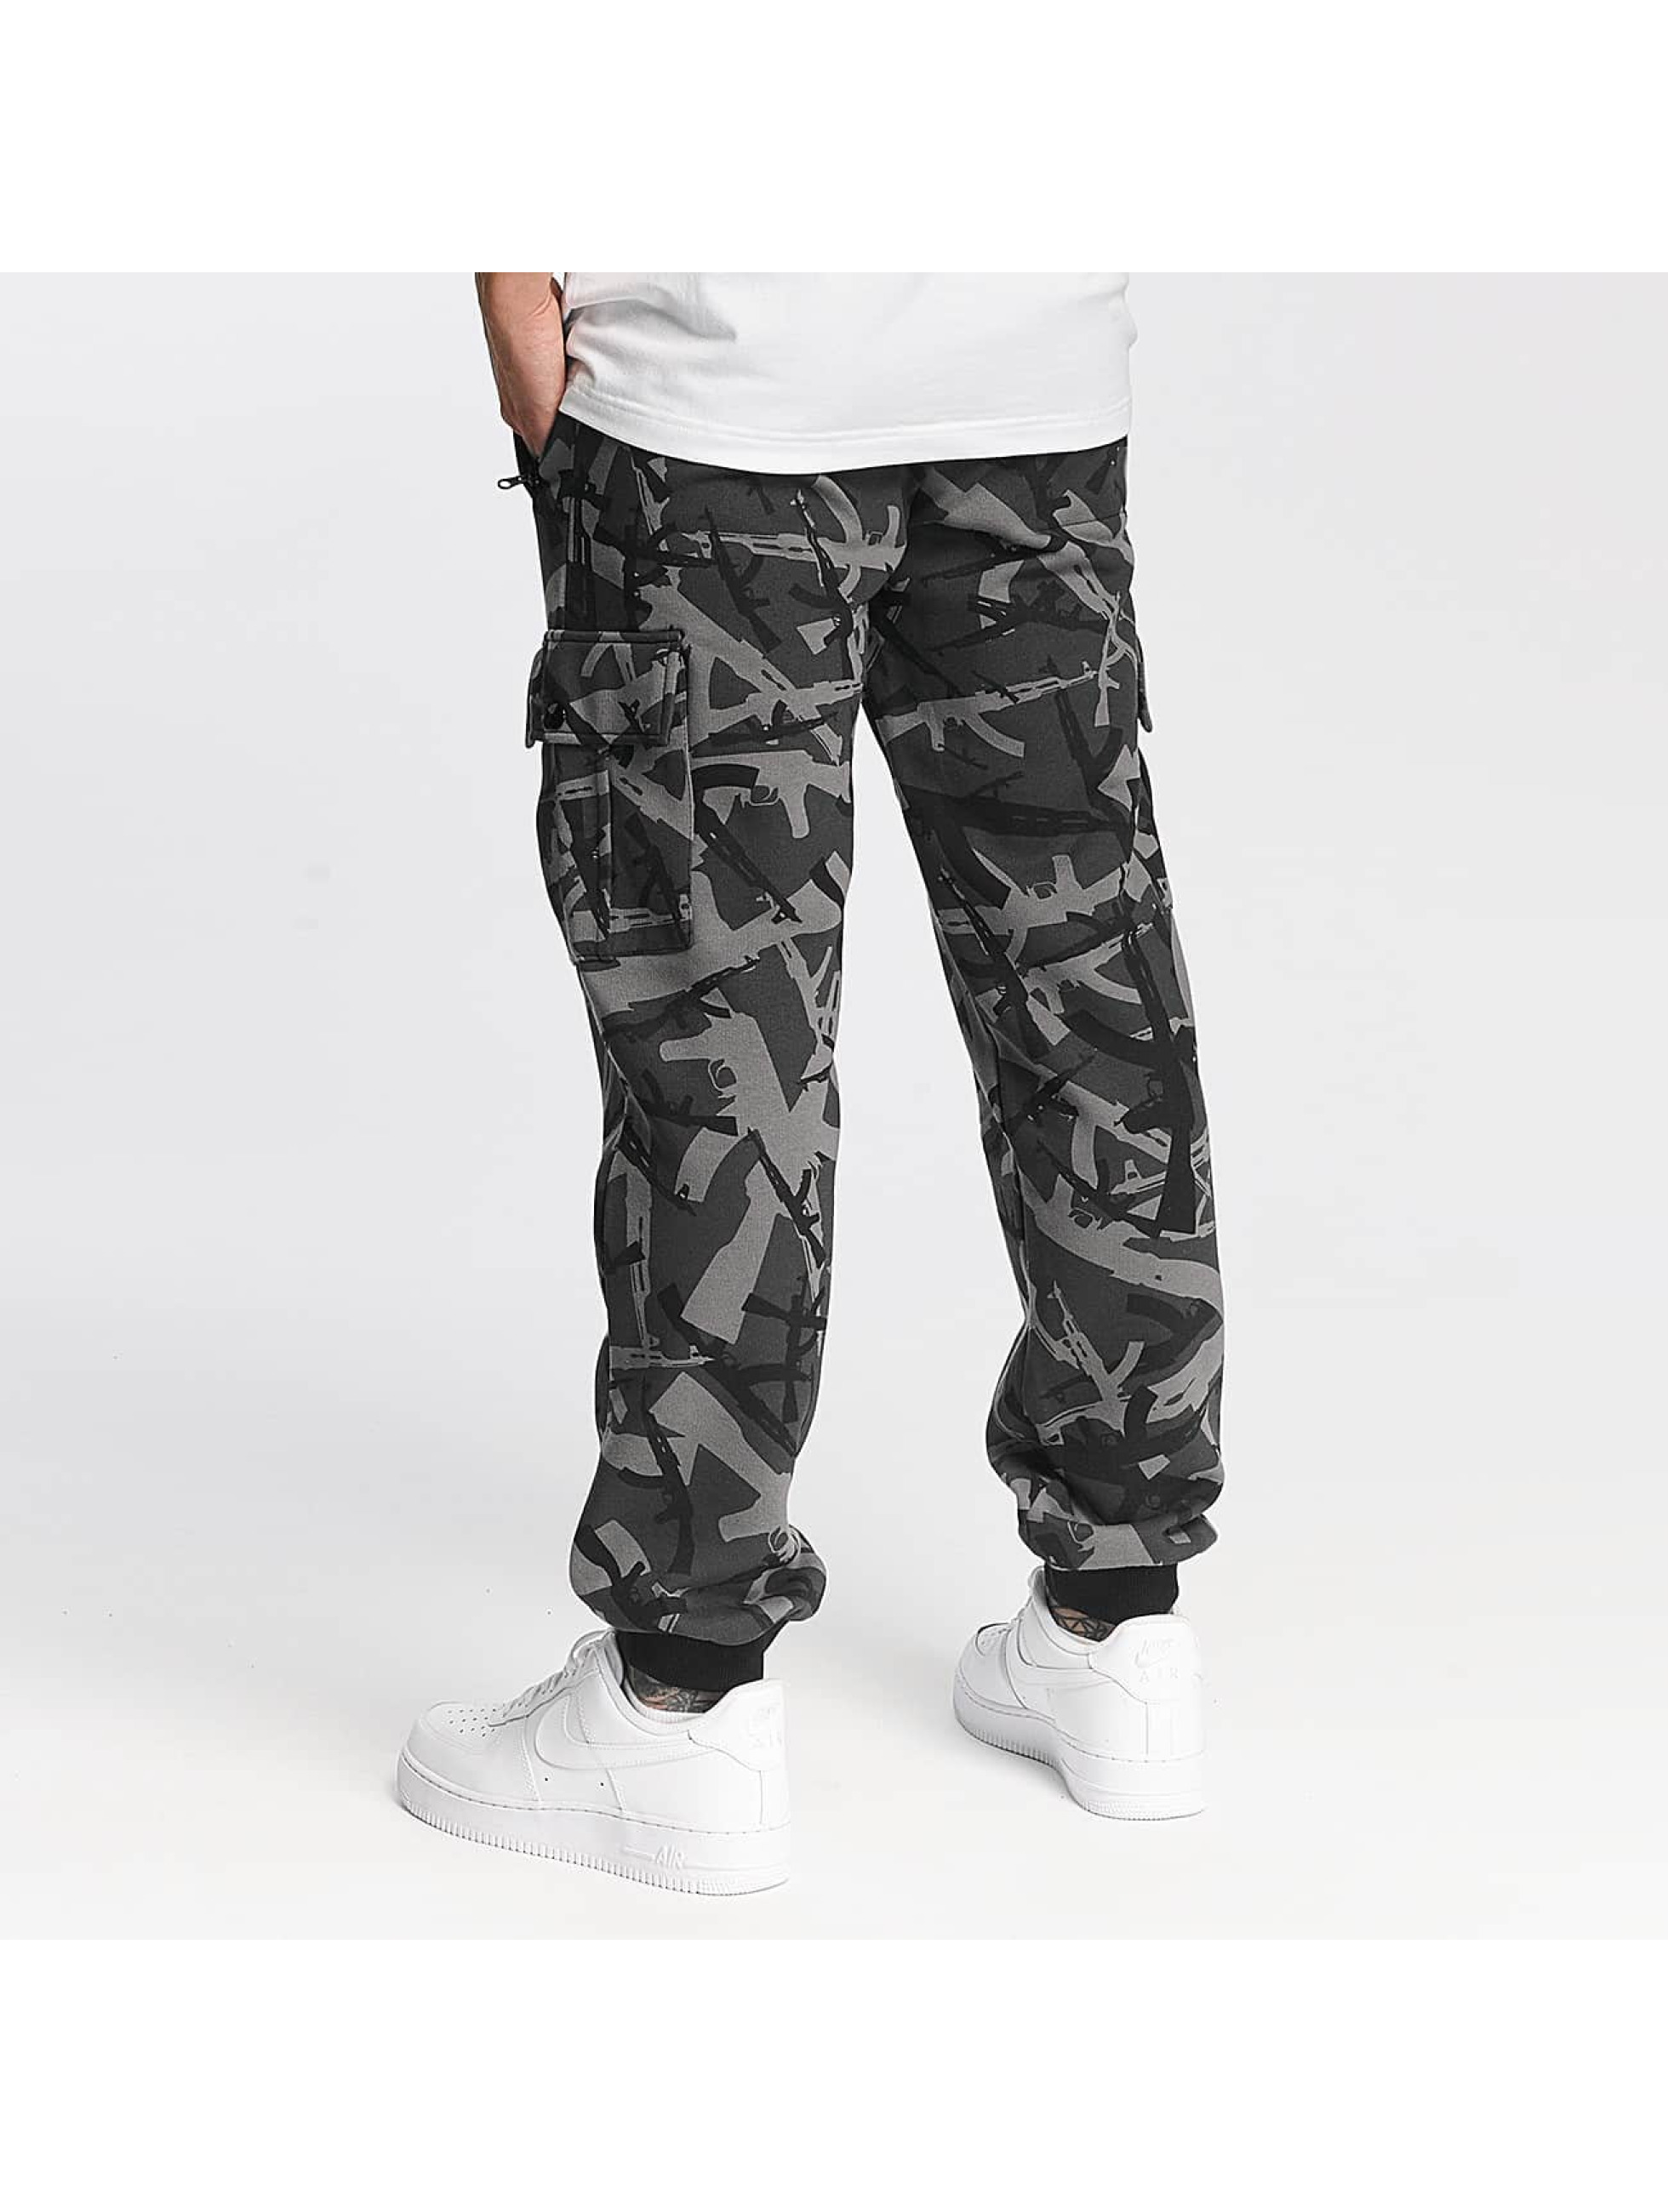 Pusher Apparel Jogging AK Camo camouflage